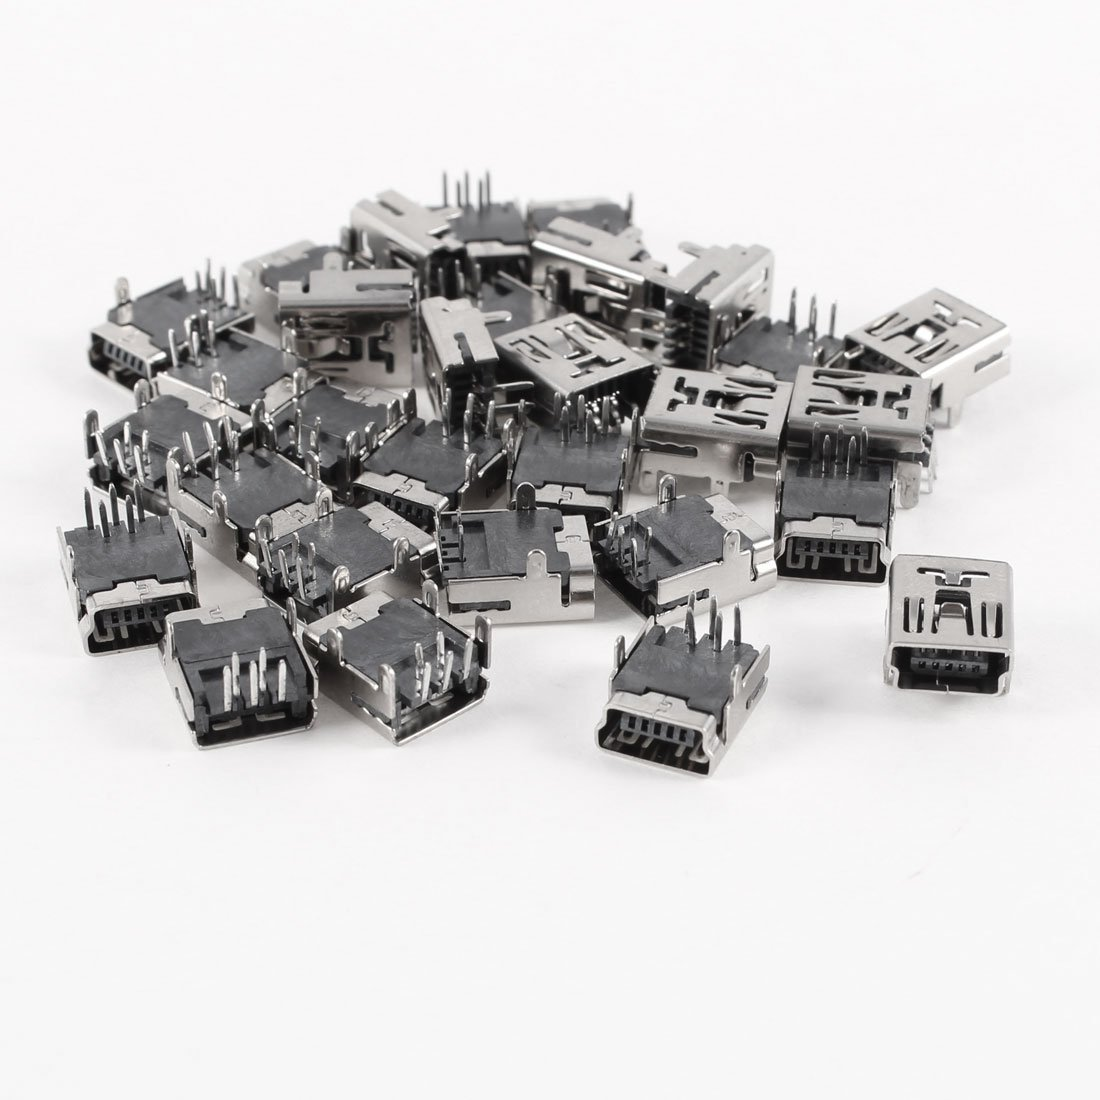 30 Pcs Mini USB Type B Female Socket 5-Pin Right Angle DIP Jack Connector